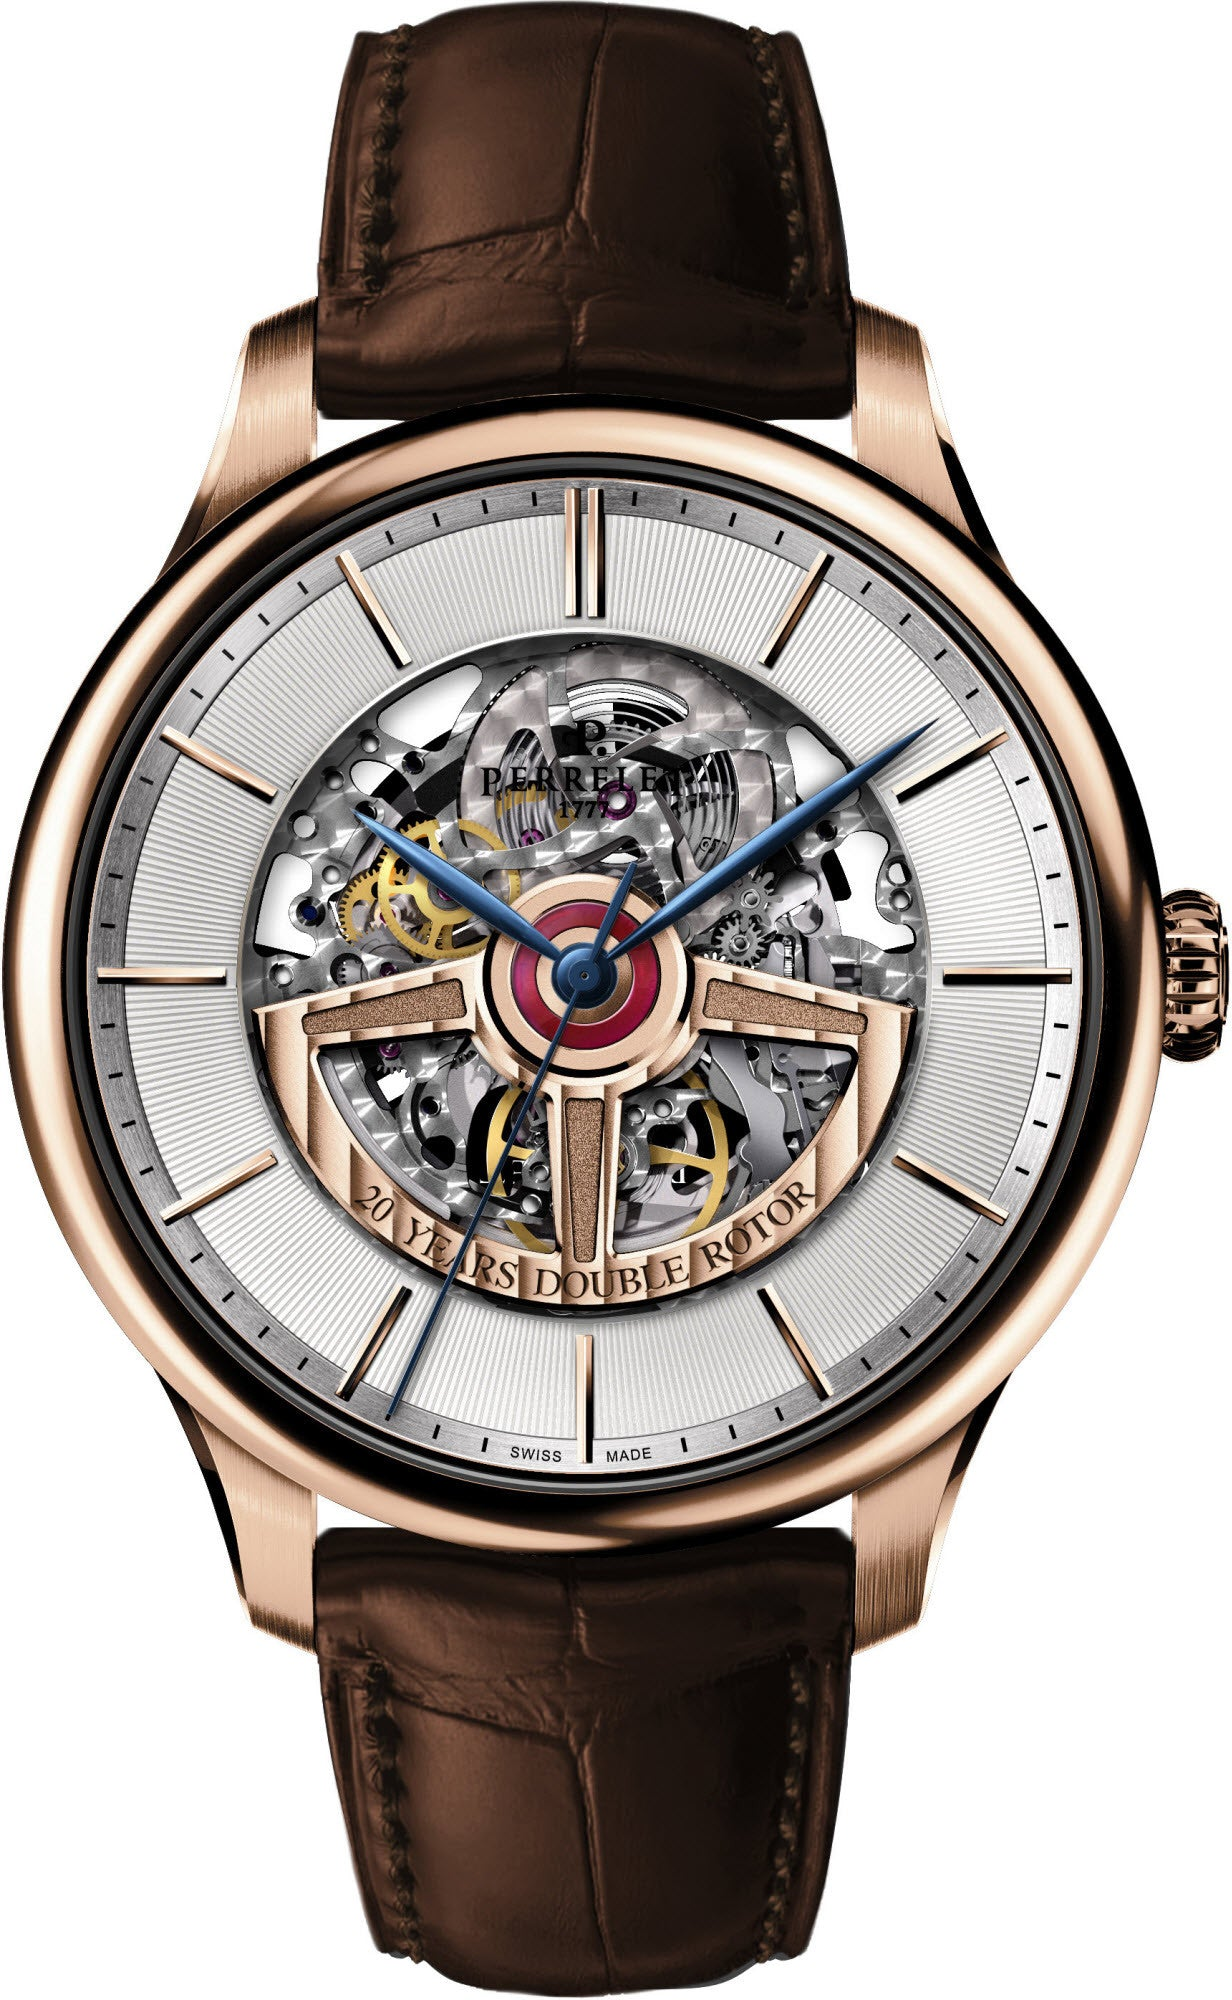 Perrelet Watch First Class Double Rotor 20th Anniversary Limited Edition